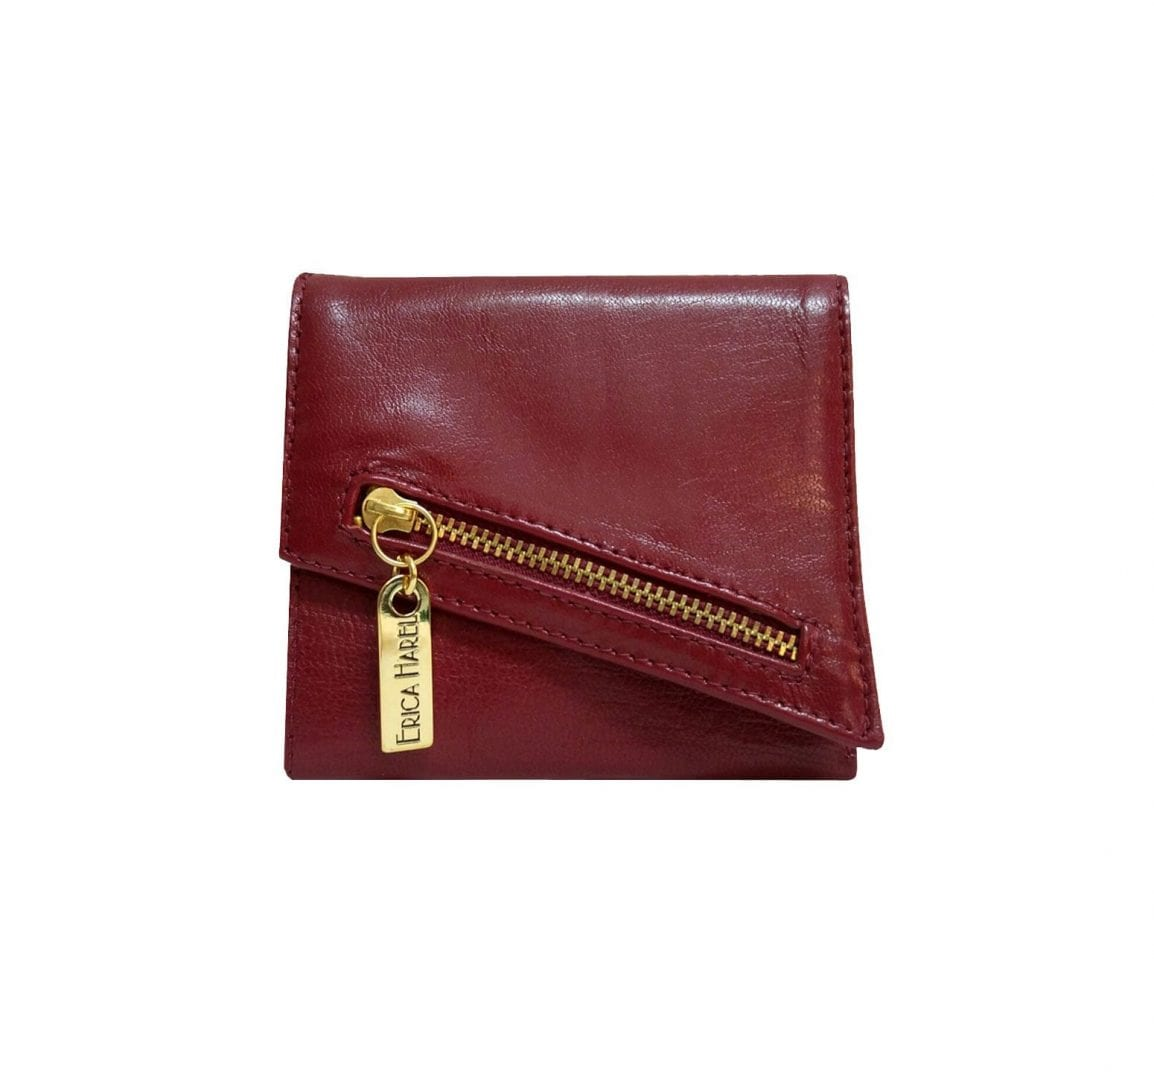 burgundy leather wallet